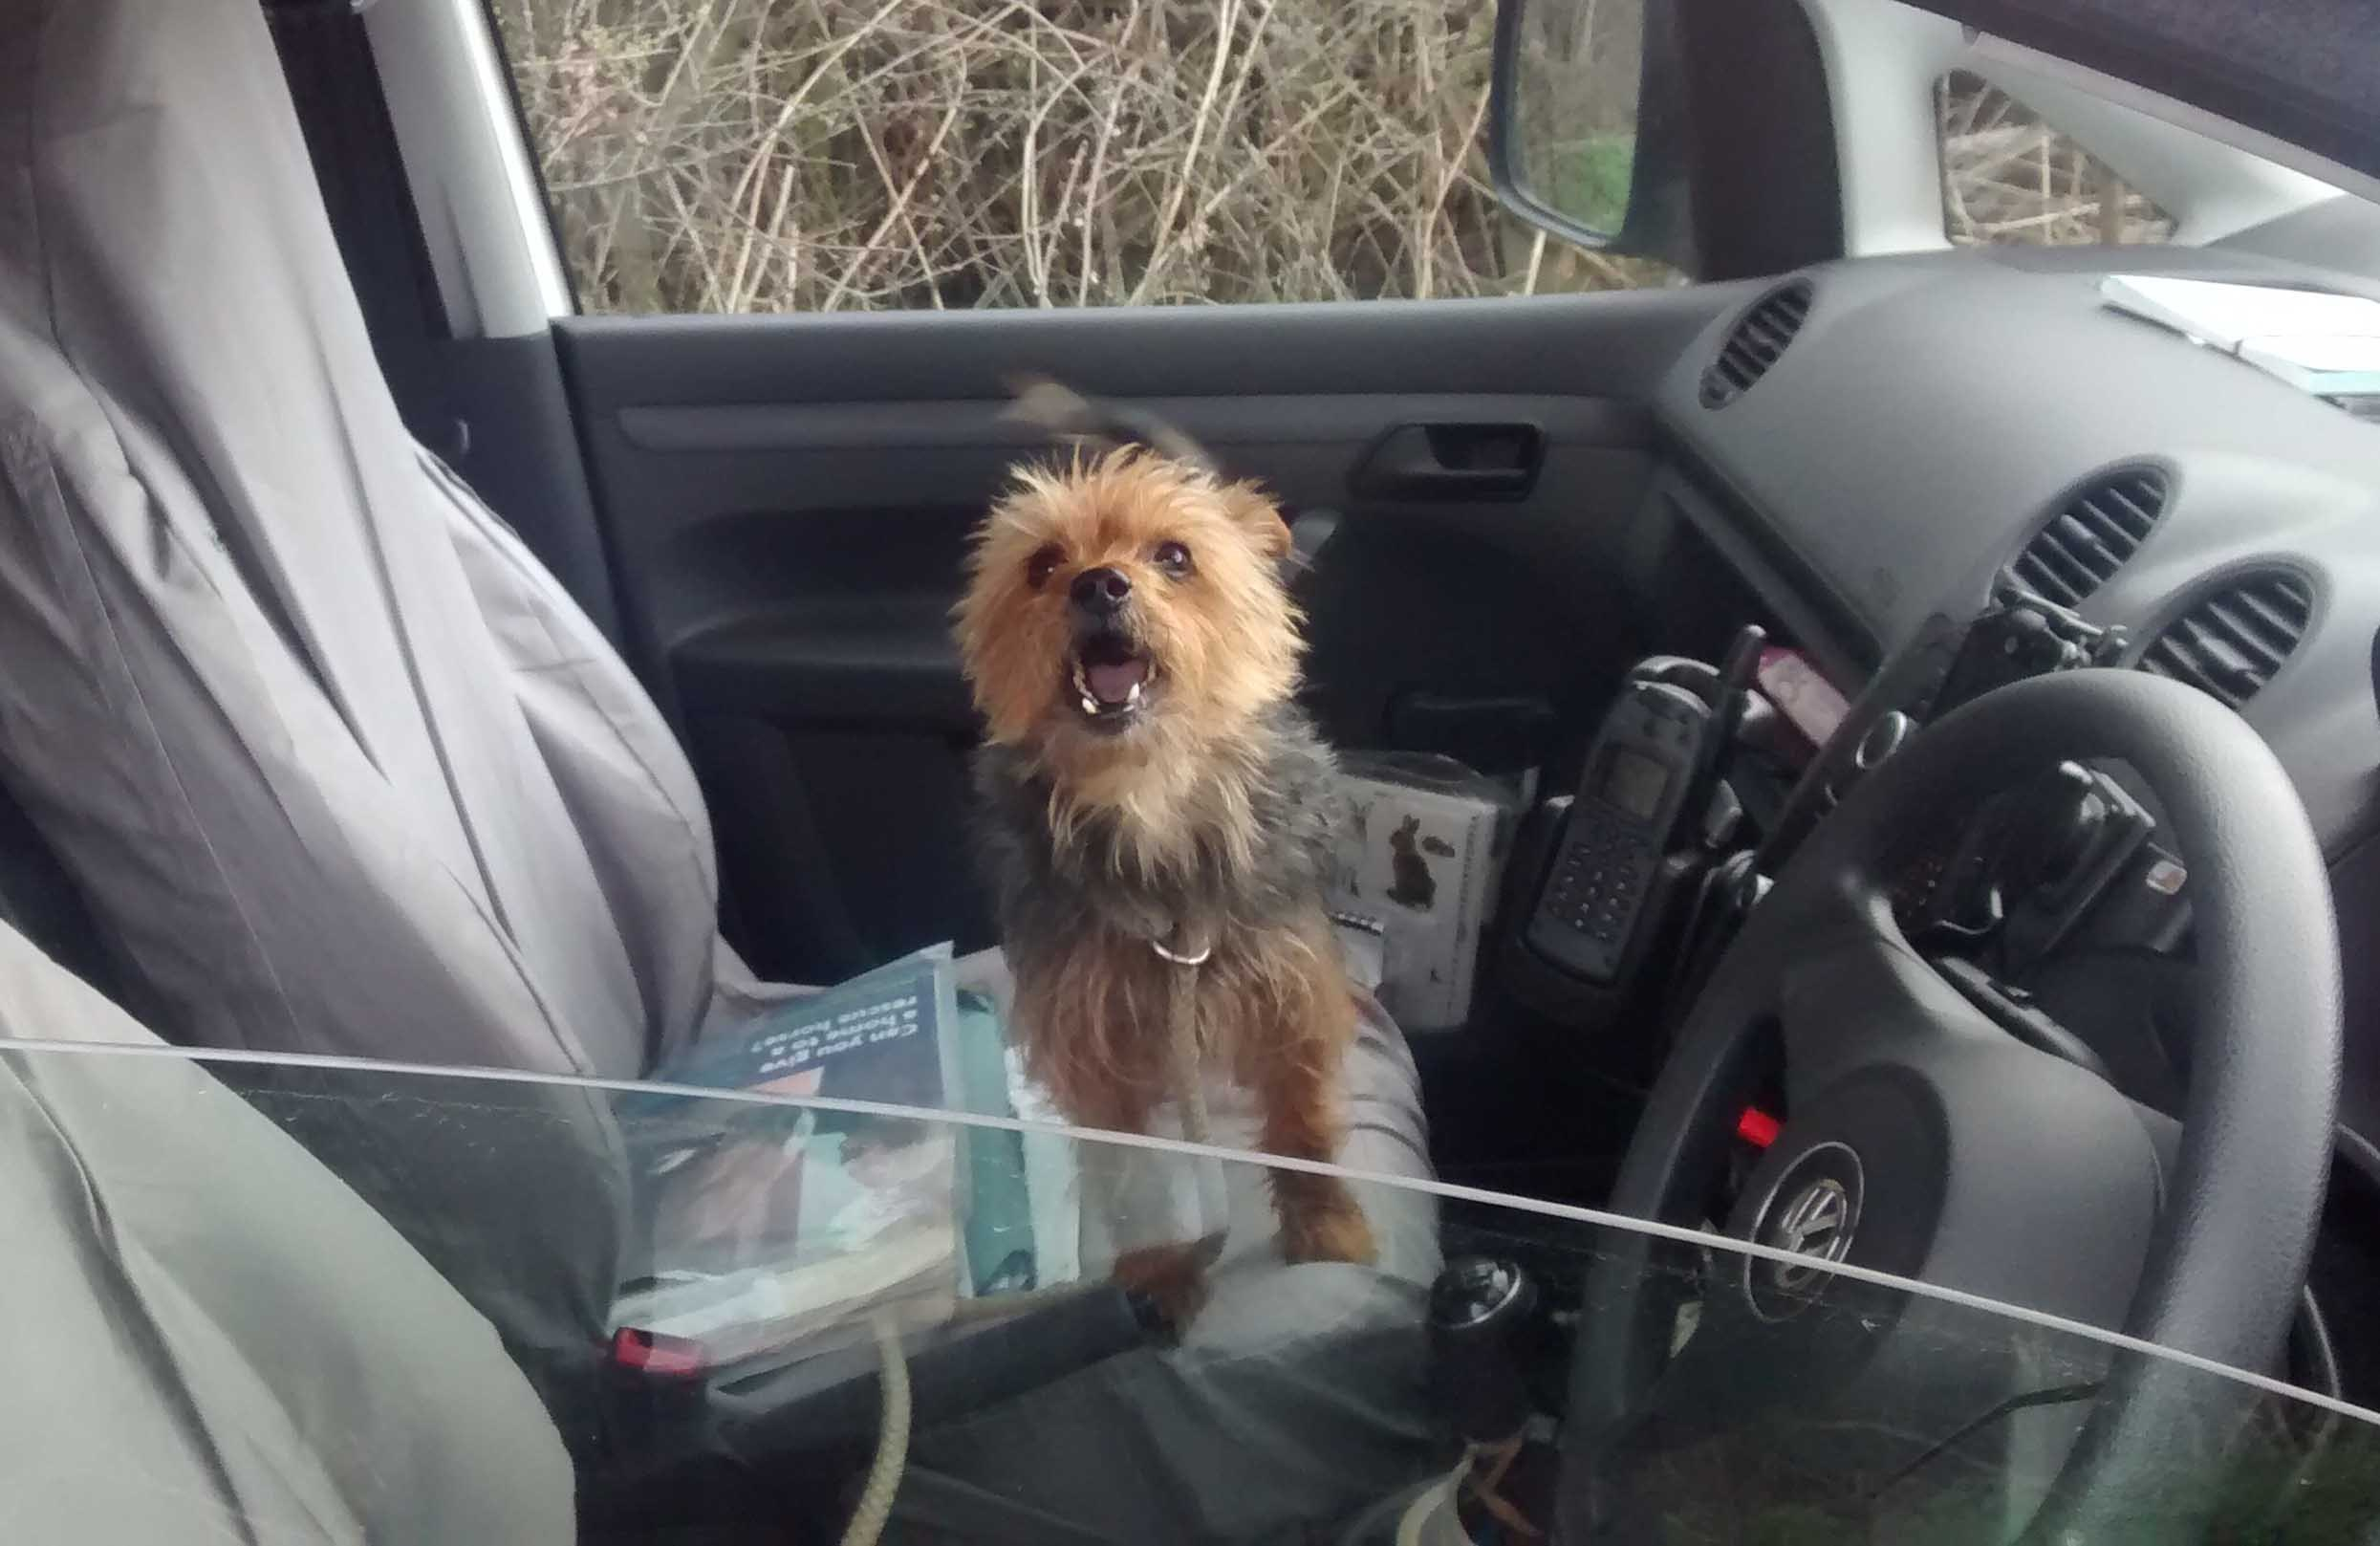 BEST QUALITY AVAILABLEUndated handout photo issued by RSPCA of Alfie, a stolen dog dumped by callous thieves that engineered a rescue by flagging down a passing RSPCA van more than 100 miles from its home. PRESS ASSOCIATION Photo. Issue date: Wednesday April 8, 2015. Alfie the Yorkshire Terrier brought charity inspector Stephanie Law's van to a halt on a country road in Buckinghamshire, after dashing out of nearby woodland and into the middle of the lane, barking. Braking to a stop, Ms Law then opened her door only for Alfie to immediately jump inside. See PA story ANIMALS Rescue. Photo credit should read: RSPCA/PA WireNOTE TO EDITORS: This handout photo may only be used in for editorial reporting purposes for the contemporaneous illustration of events, things or the people in the image or facts mentioned in the caption. Reuse of the picture may require further permission from the copyright holder.